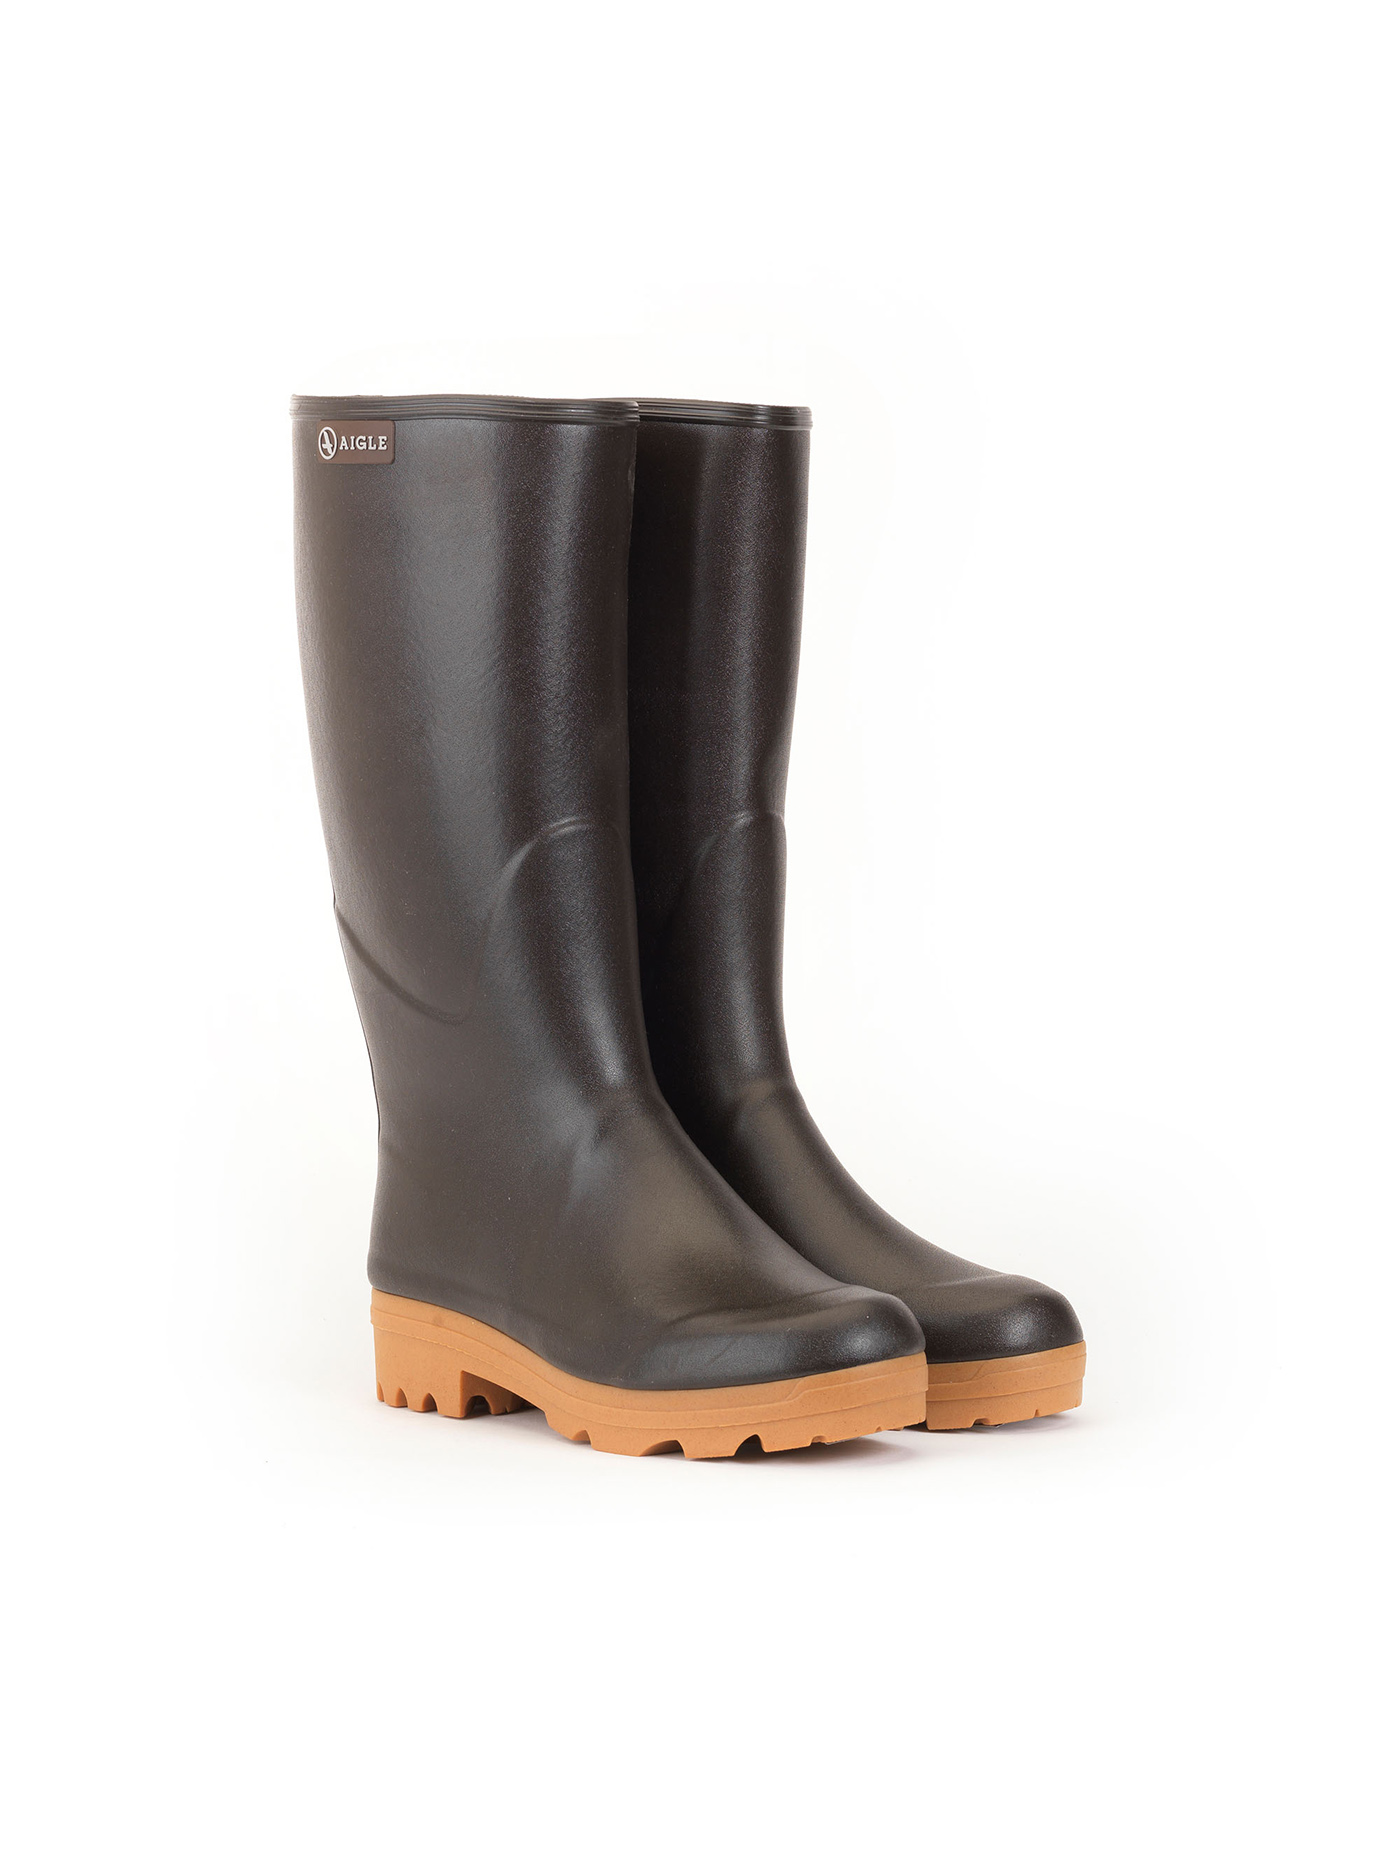 bottes aigle homme taille 47